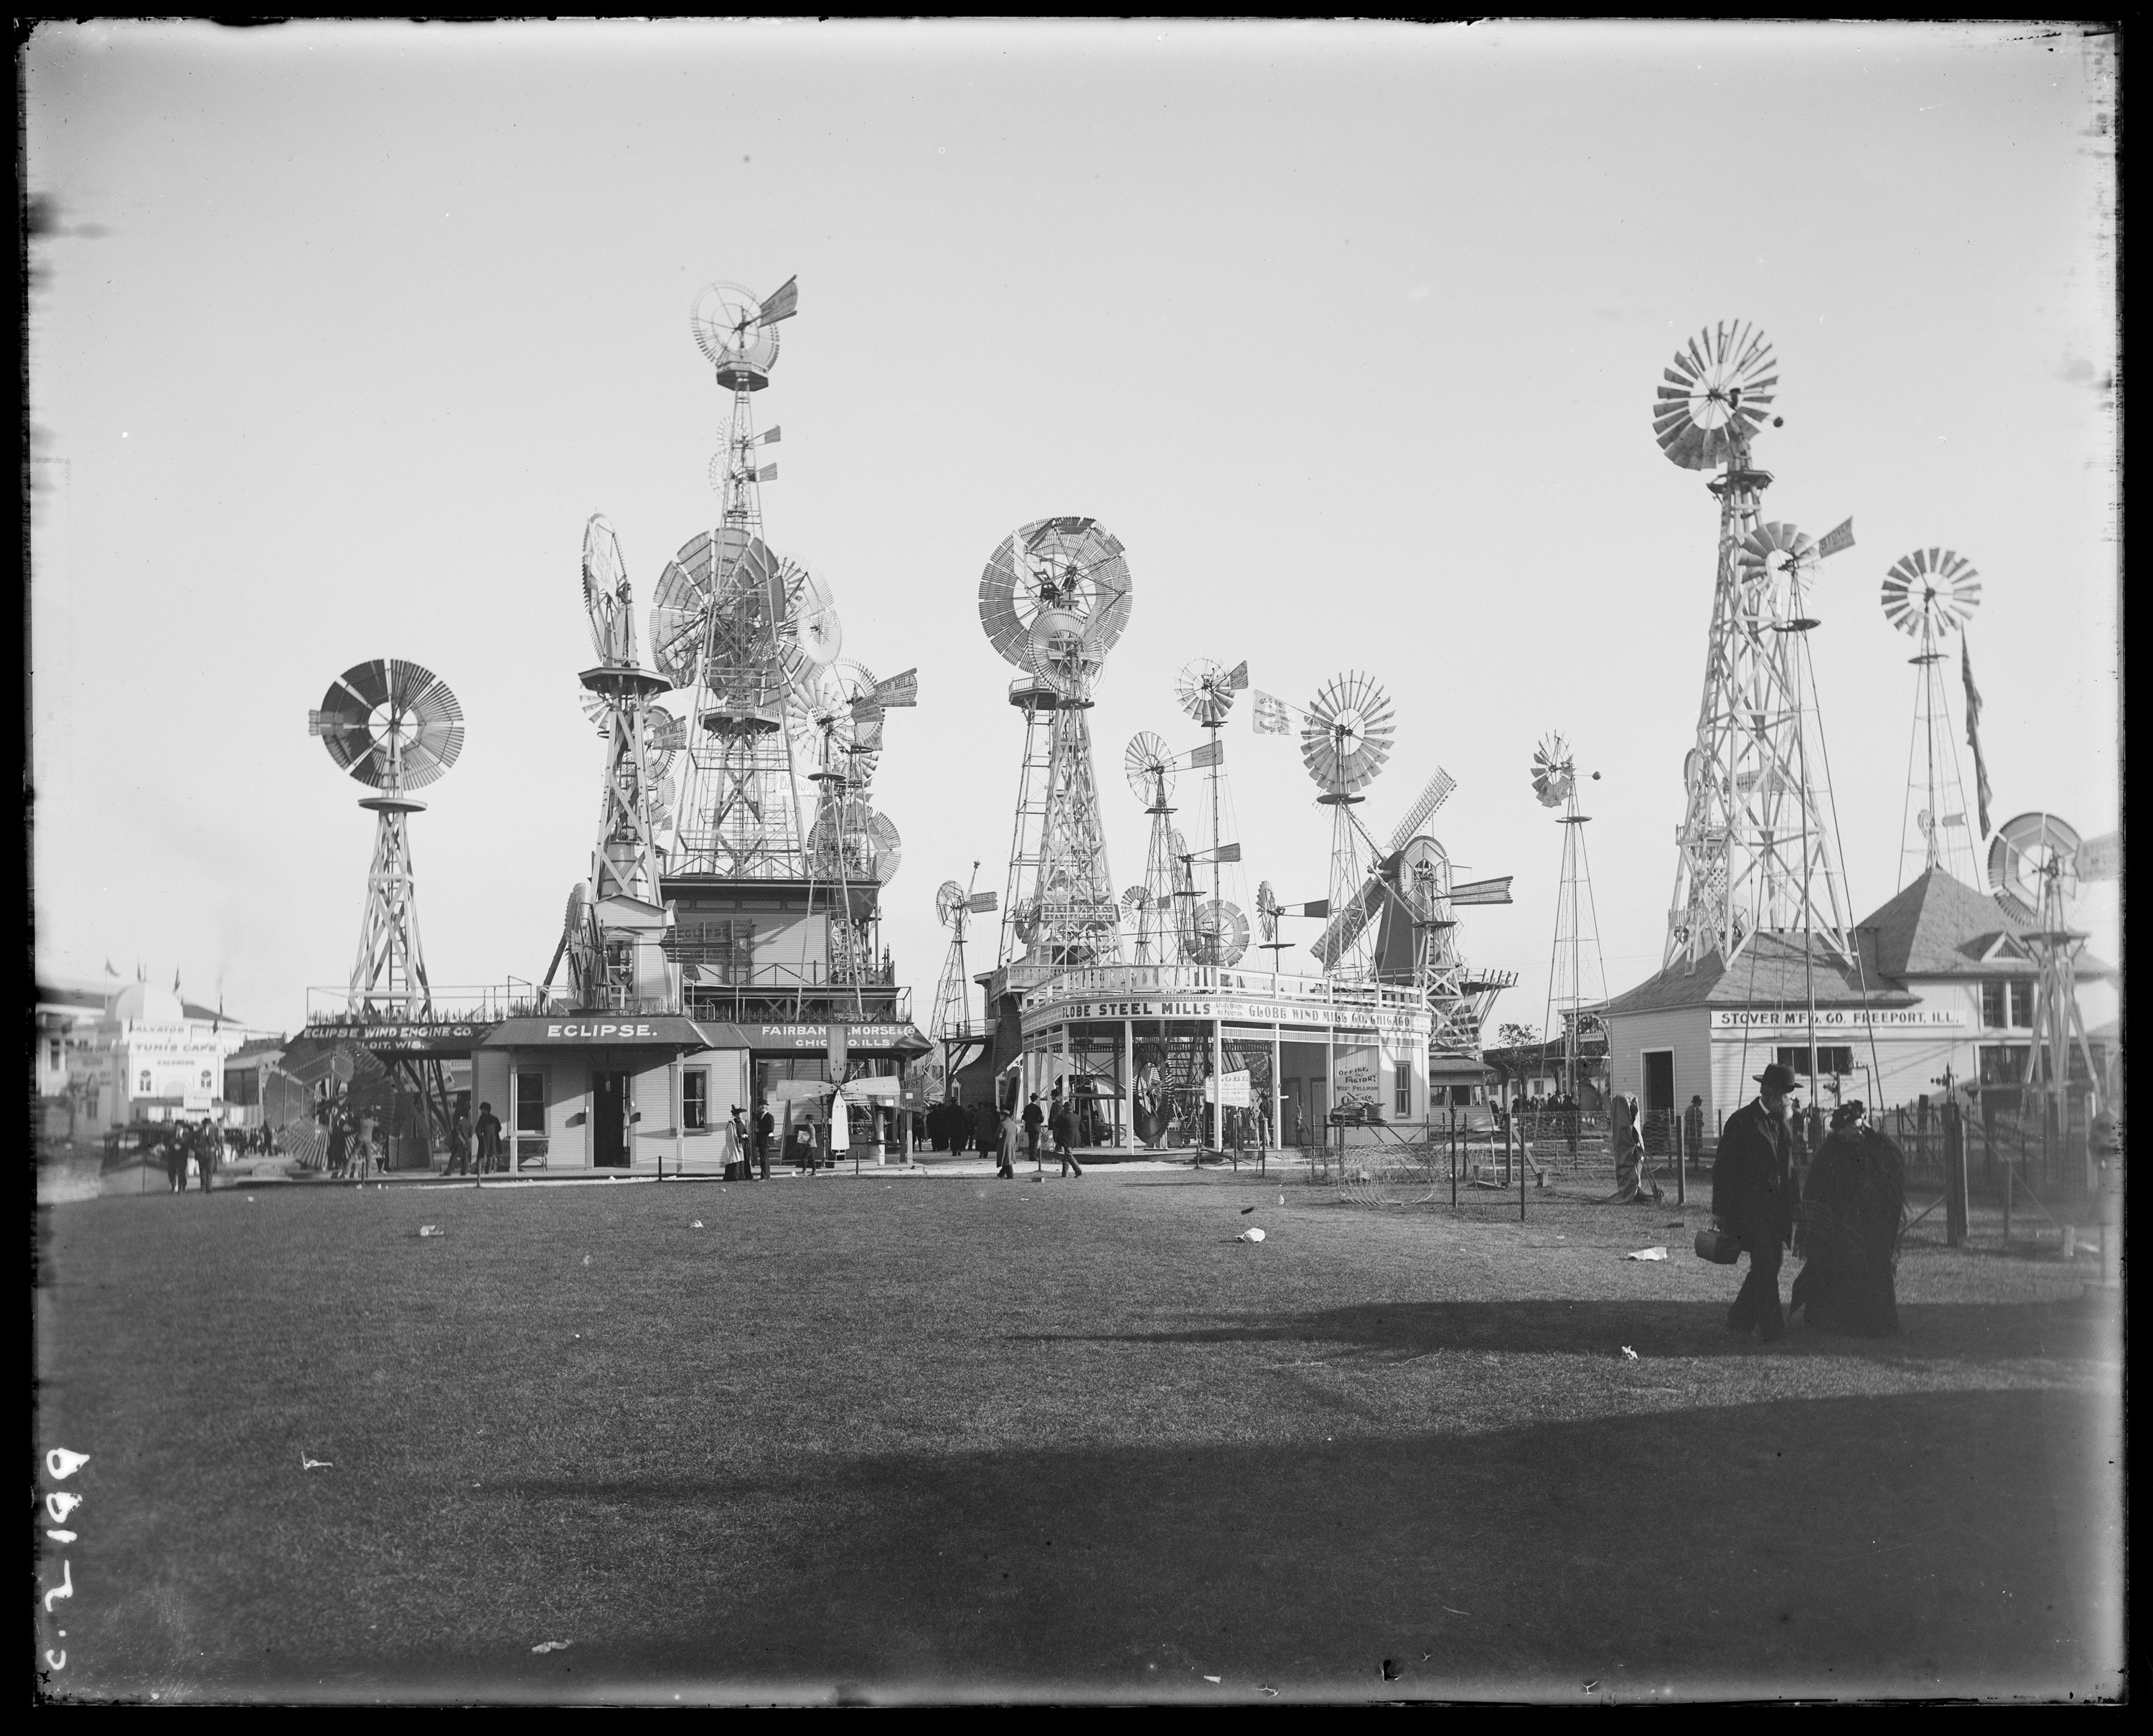 Photo from World's Columbian Exposition